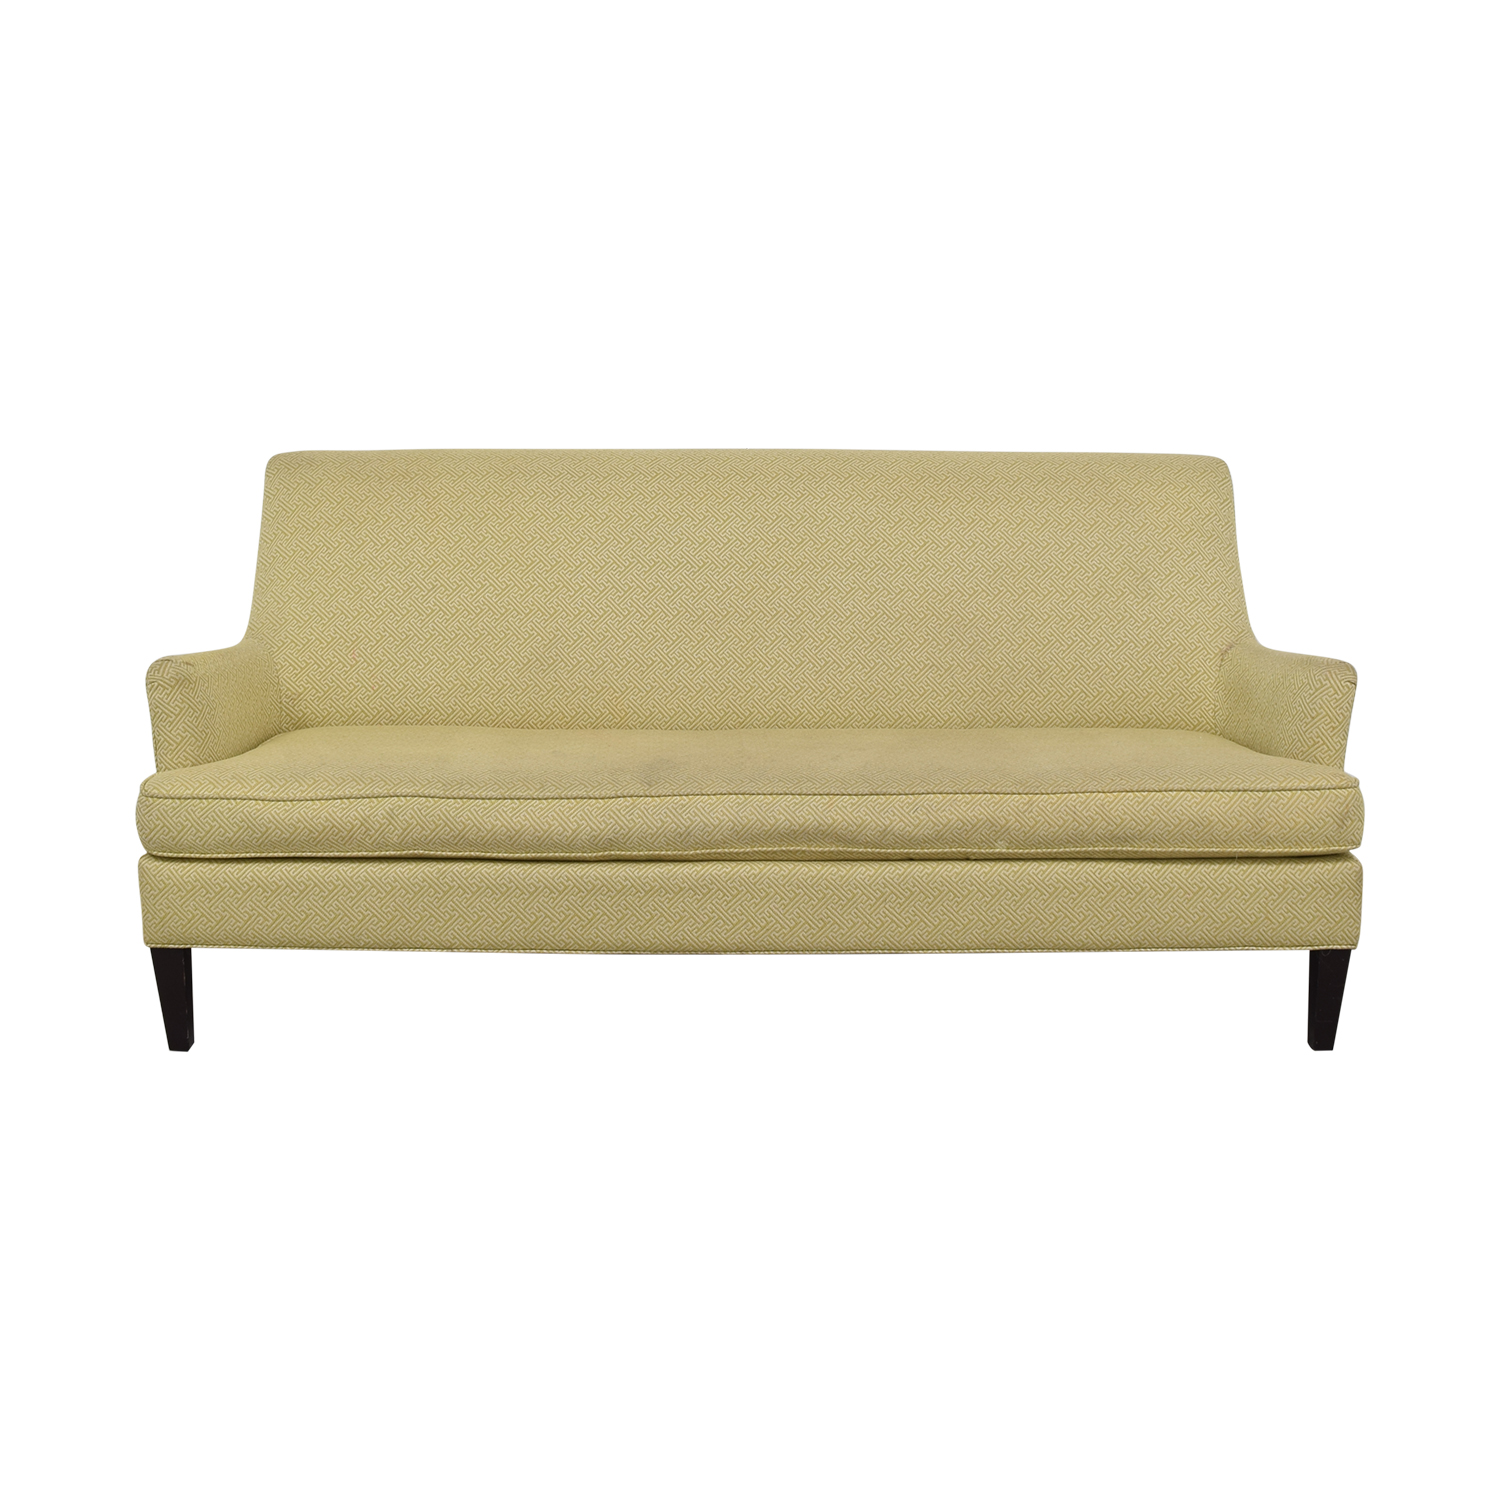 Room & Board Sofa / Classic Sofas